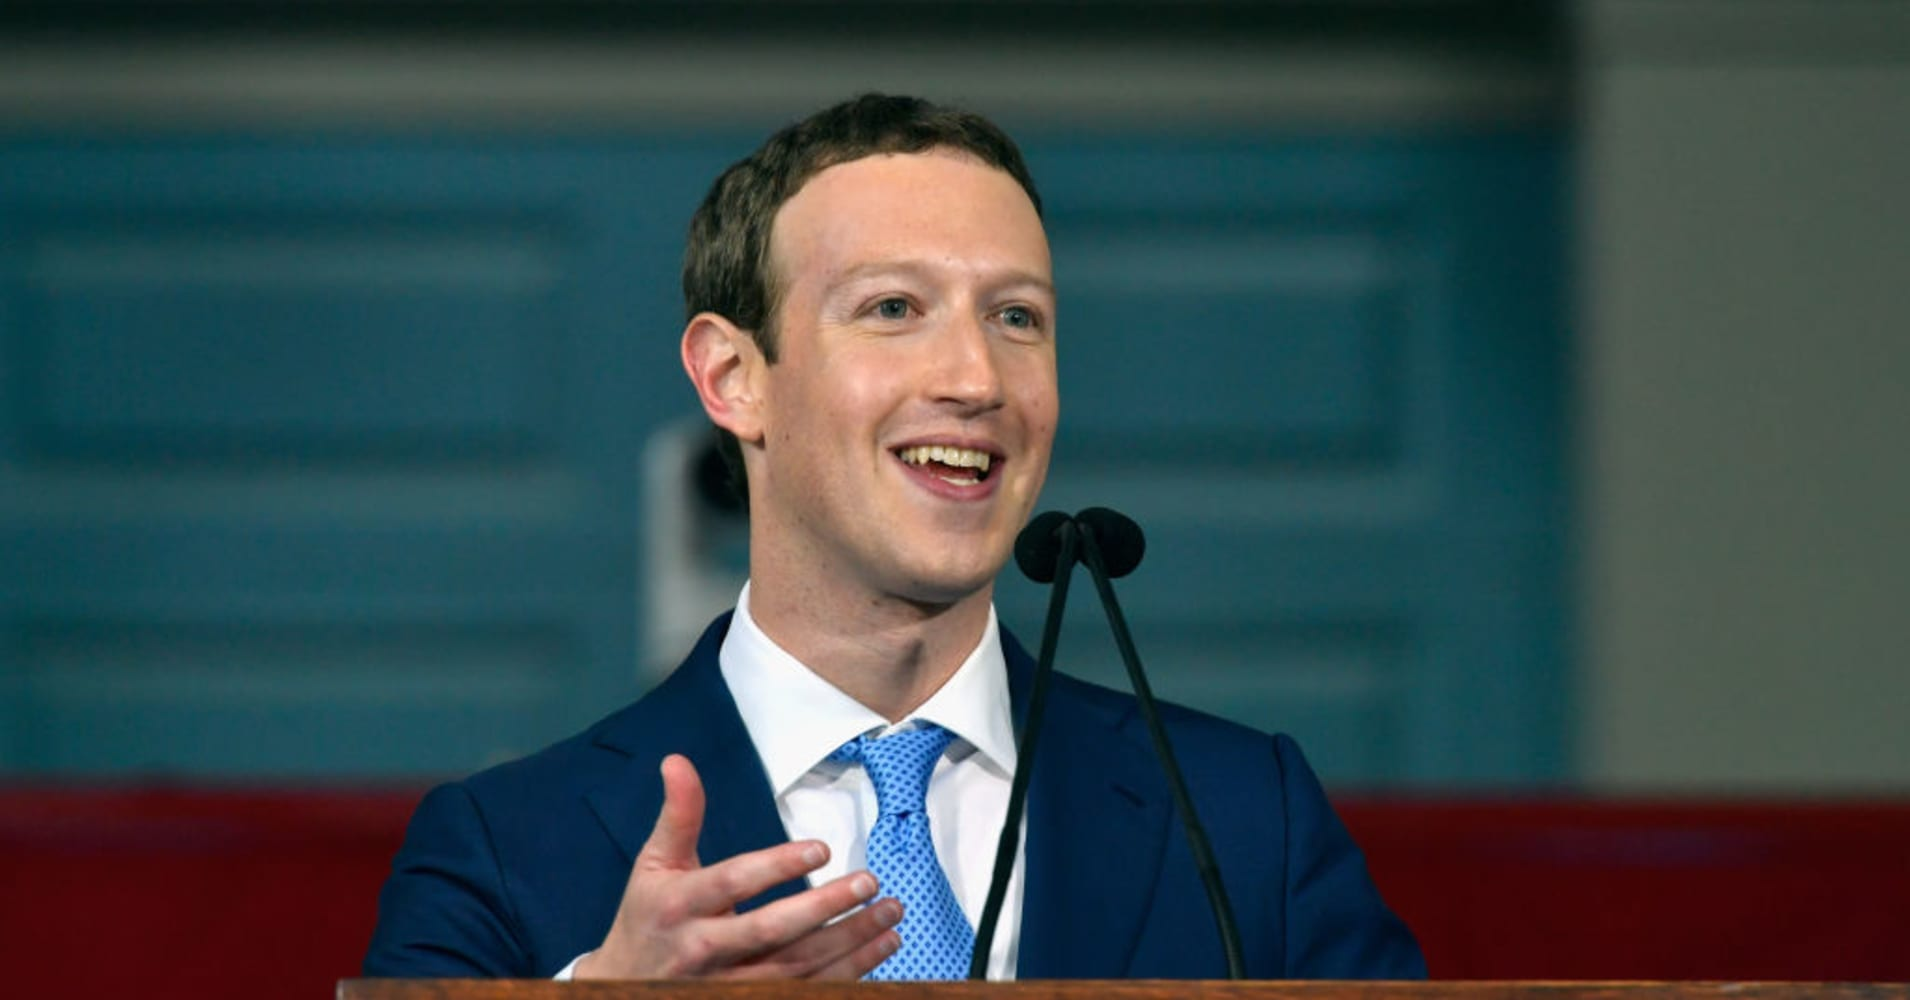 Facebook Founder and CEO Mark Zuckerberg delivers the commencement address at Harvard's 366th commencement exercises on May 25, 2017 in Cambridge, Massachusetts